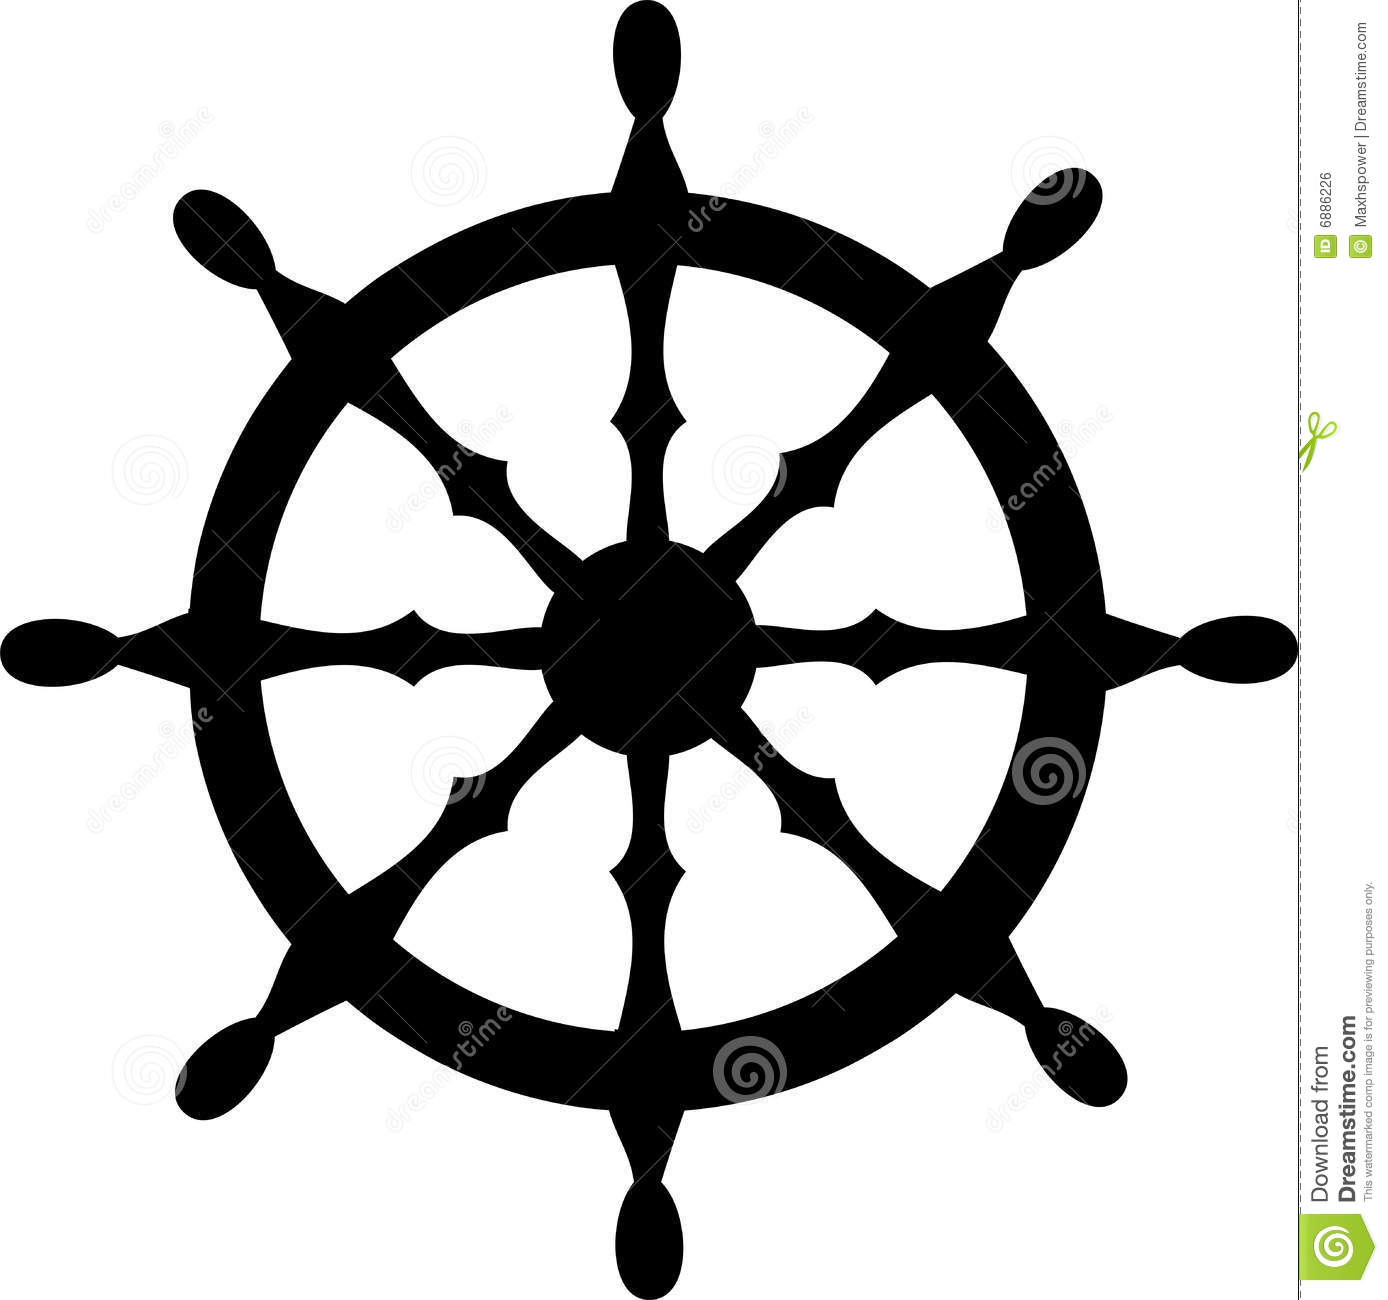 Wheel clipart sailboat. Silhouette free download best